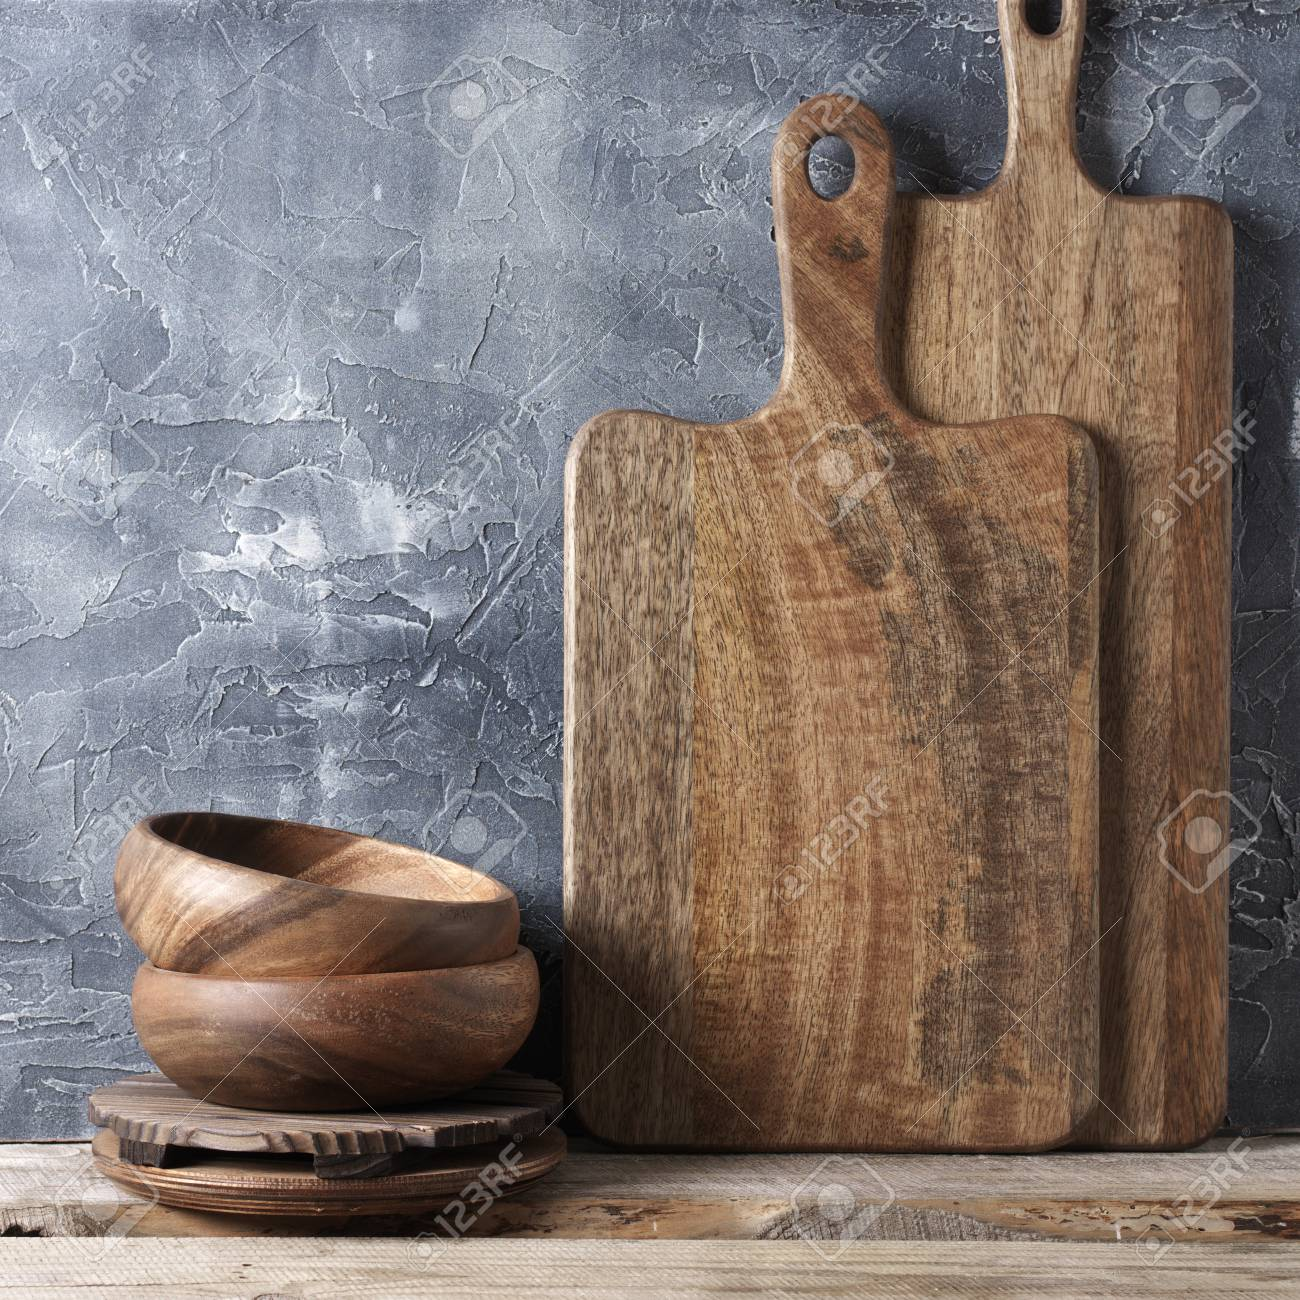 Wood Bowls And Cutting Boards On Wooden Shelf Against Rough Plaster Stock Photo Picture And Royalty Free Image Image 105786167